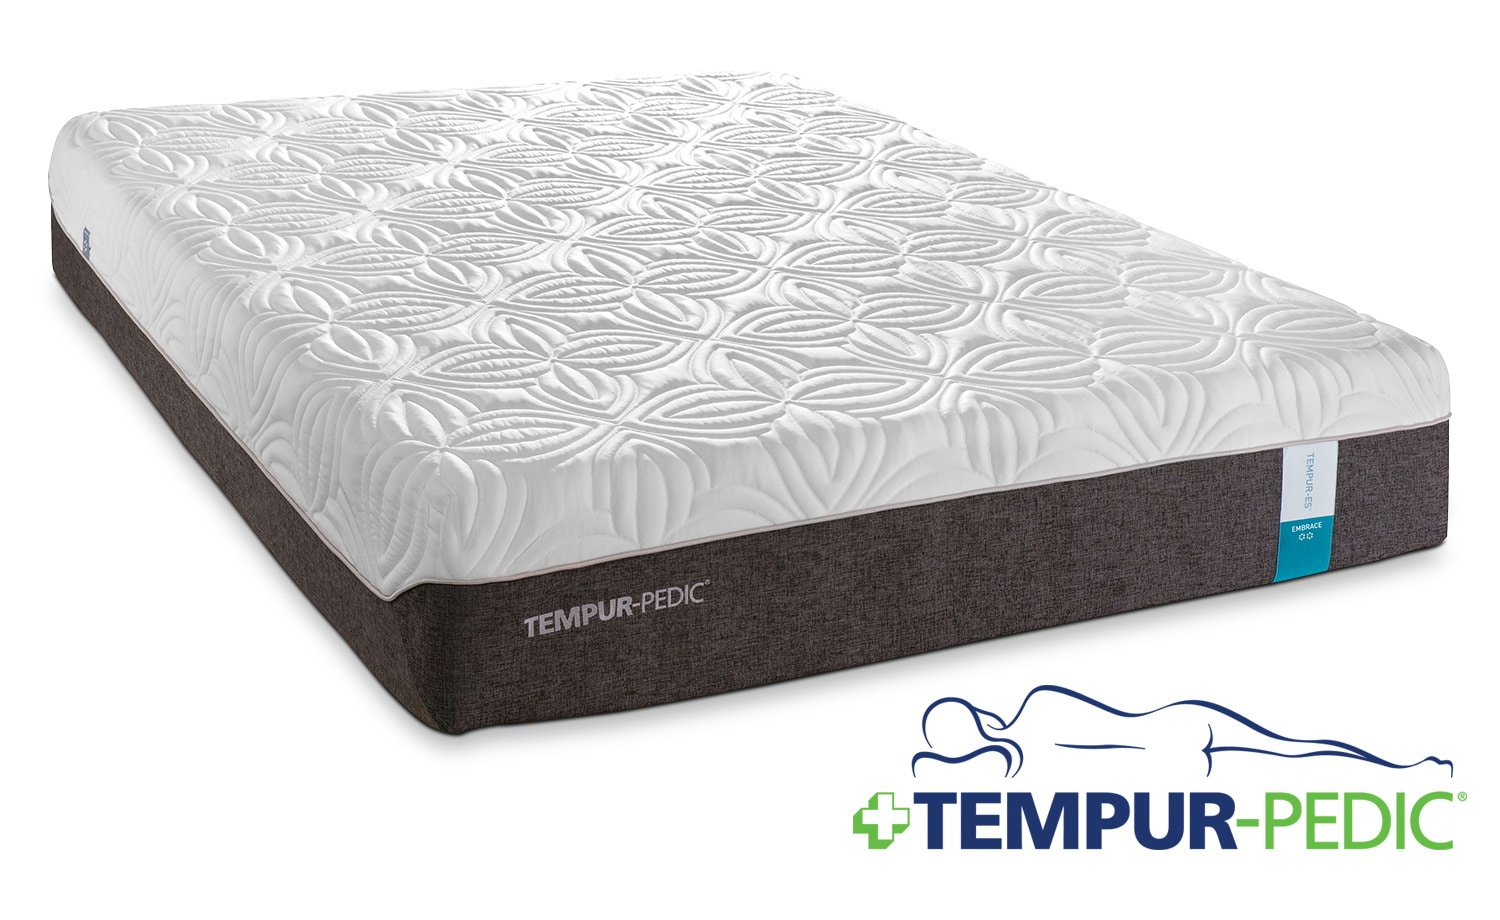 Tempur-Pedic Embrace 2.0 Plush Queen Mattress